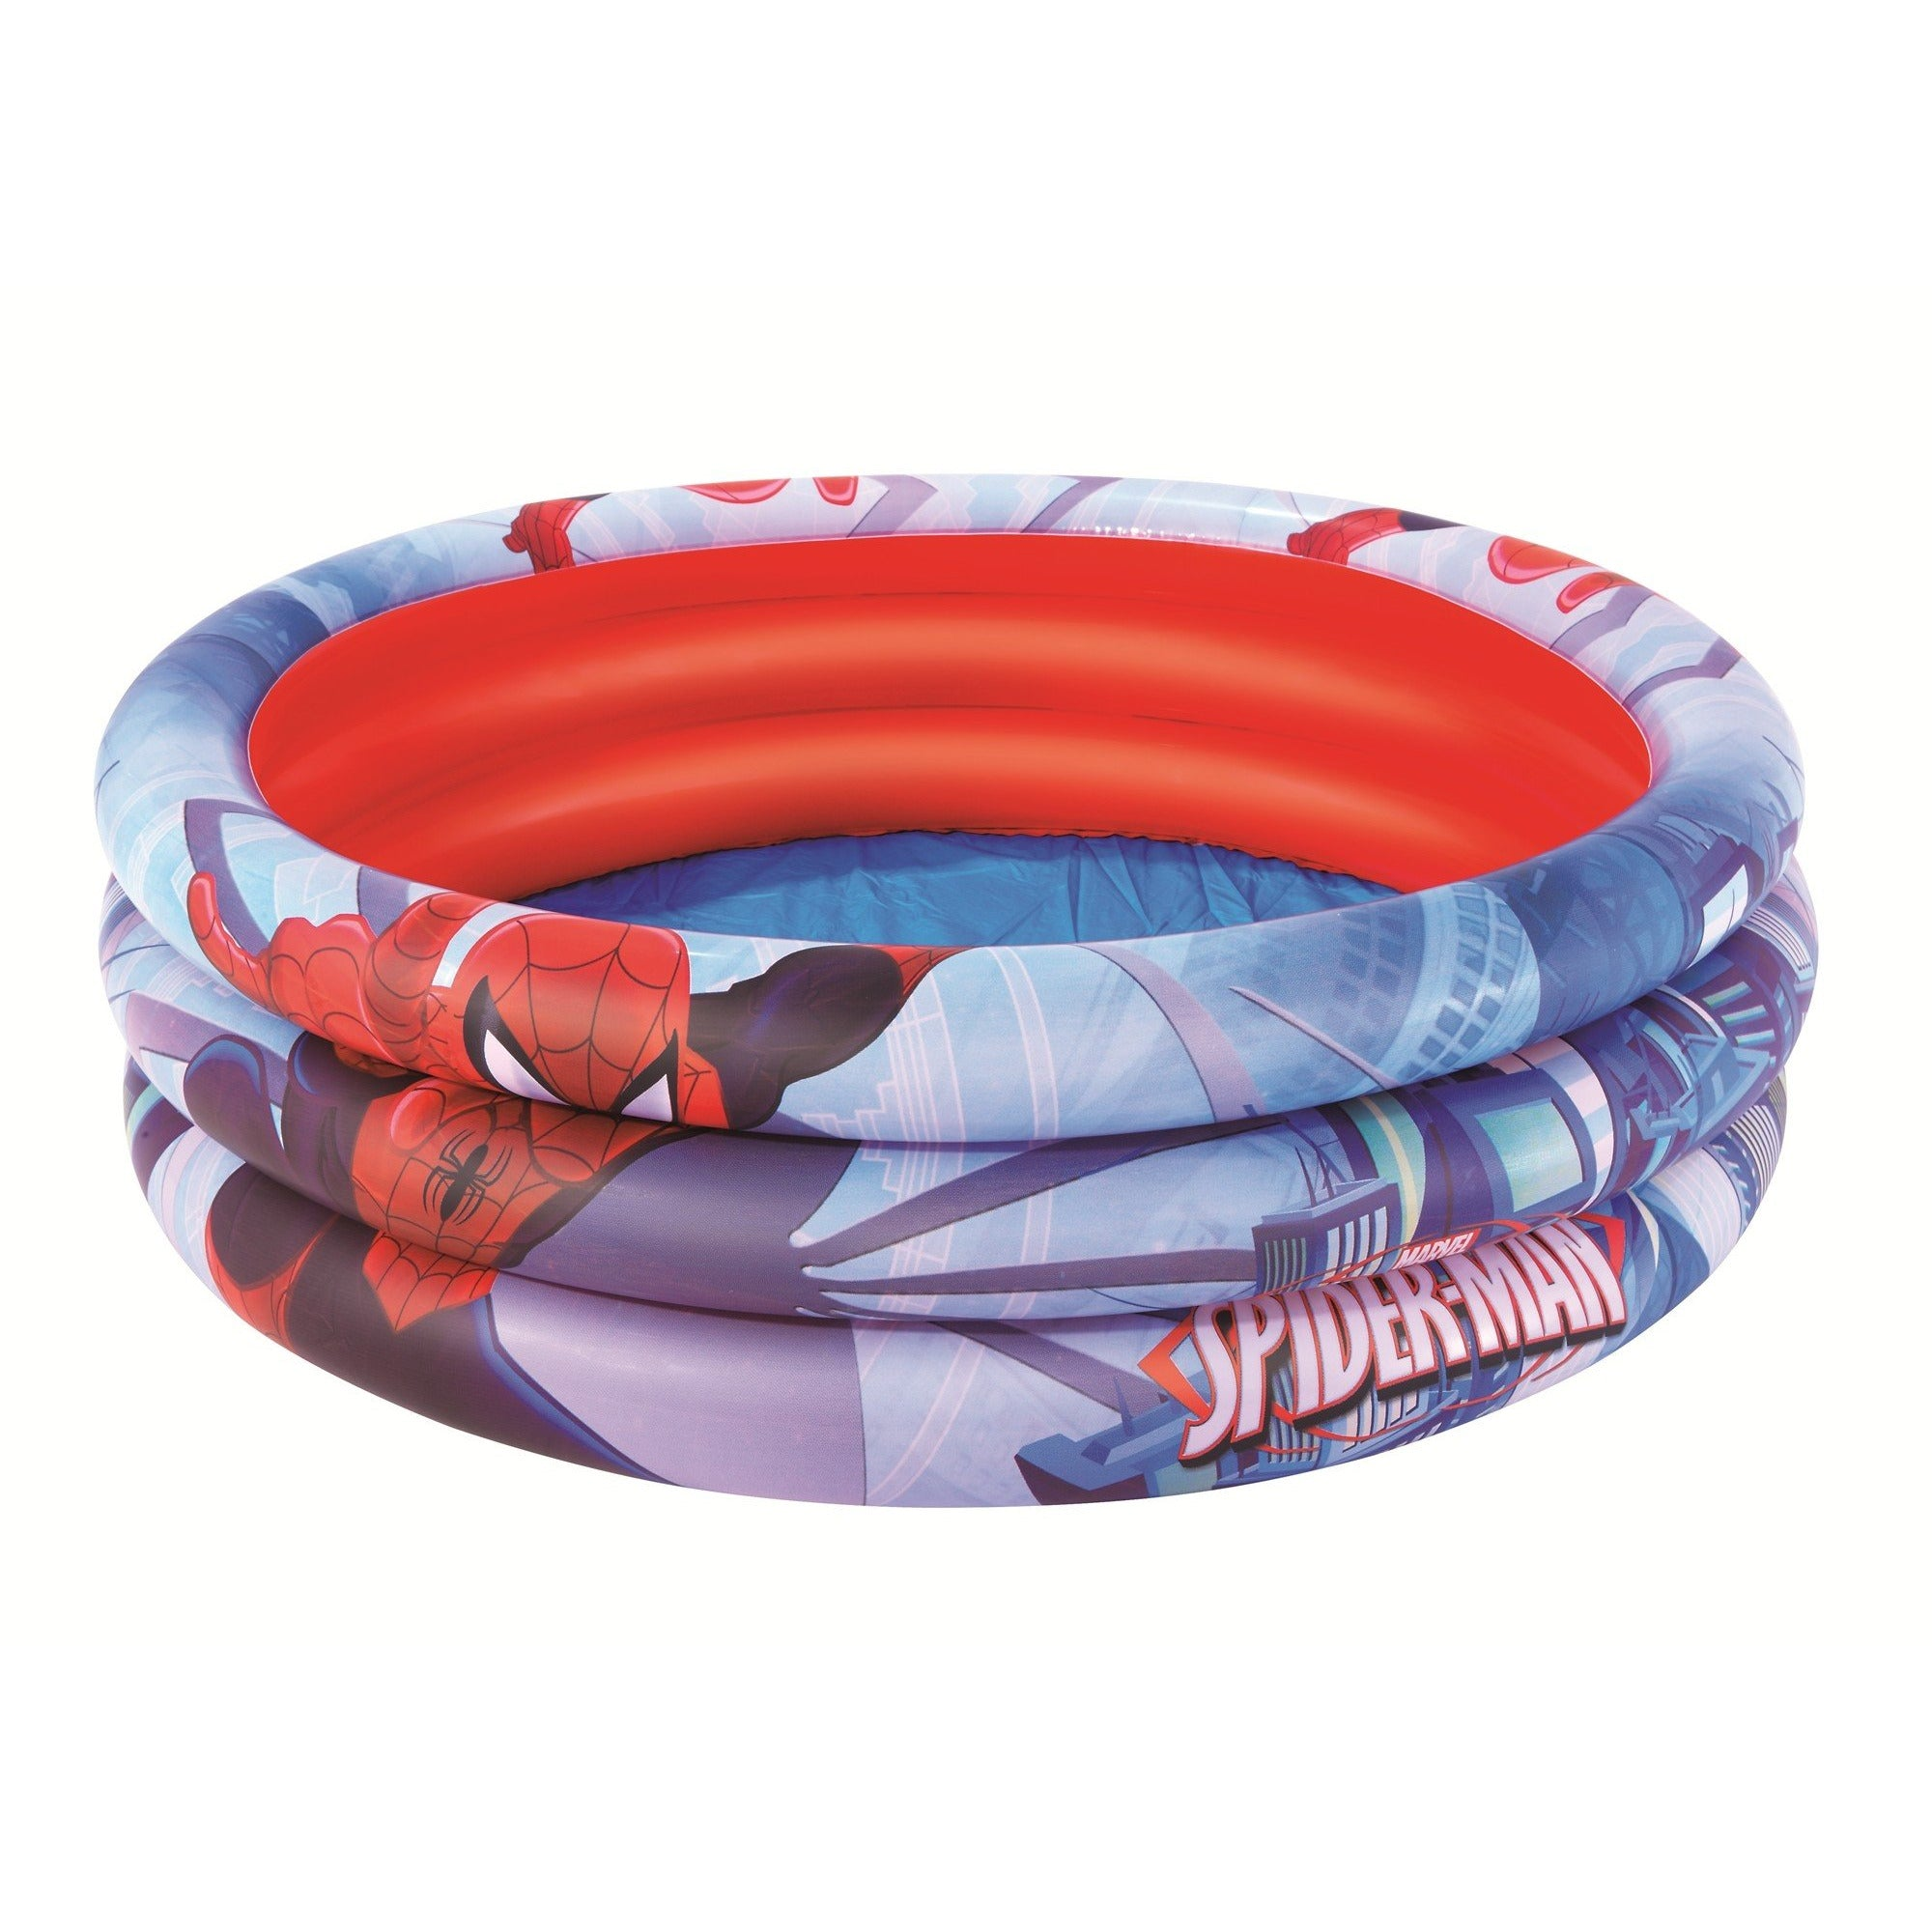 Bestway Ultimate Spiderman 3 Ring Inflatable Kids Pool